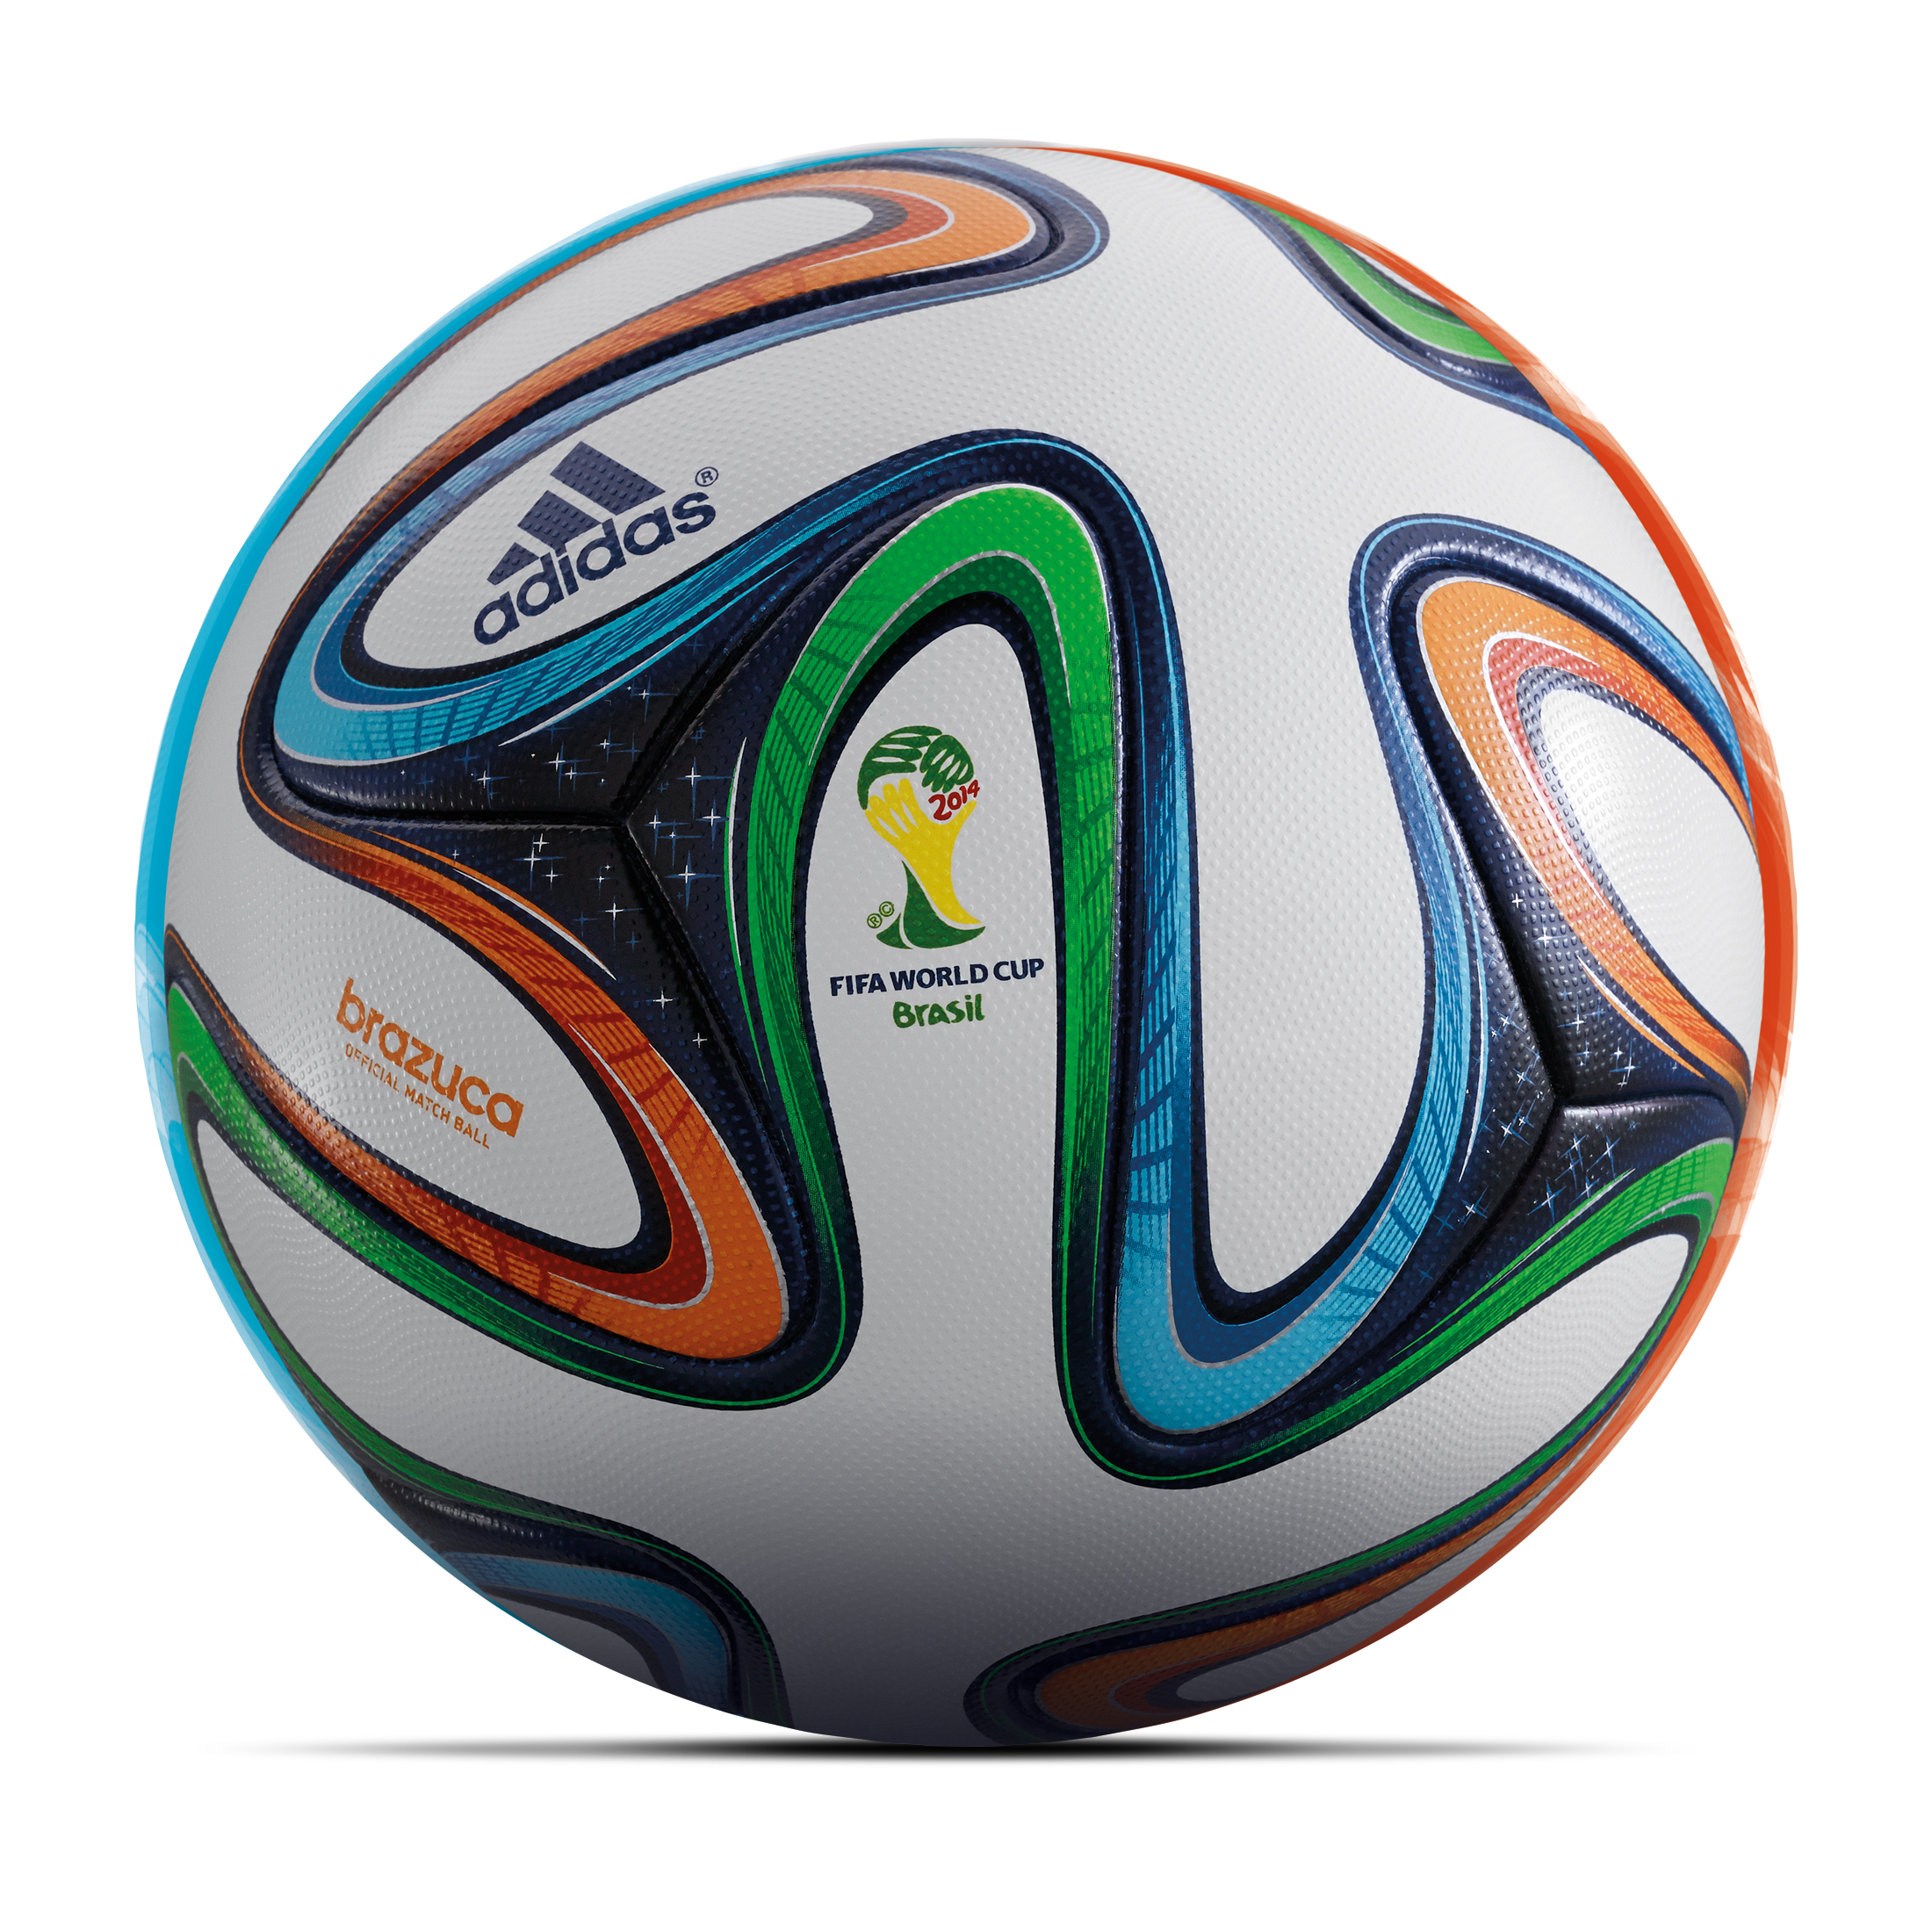 Adidas Brazuca World Cup 2014 Official Match Ball - Size 5 White